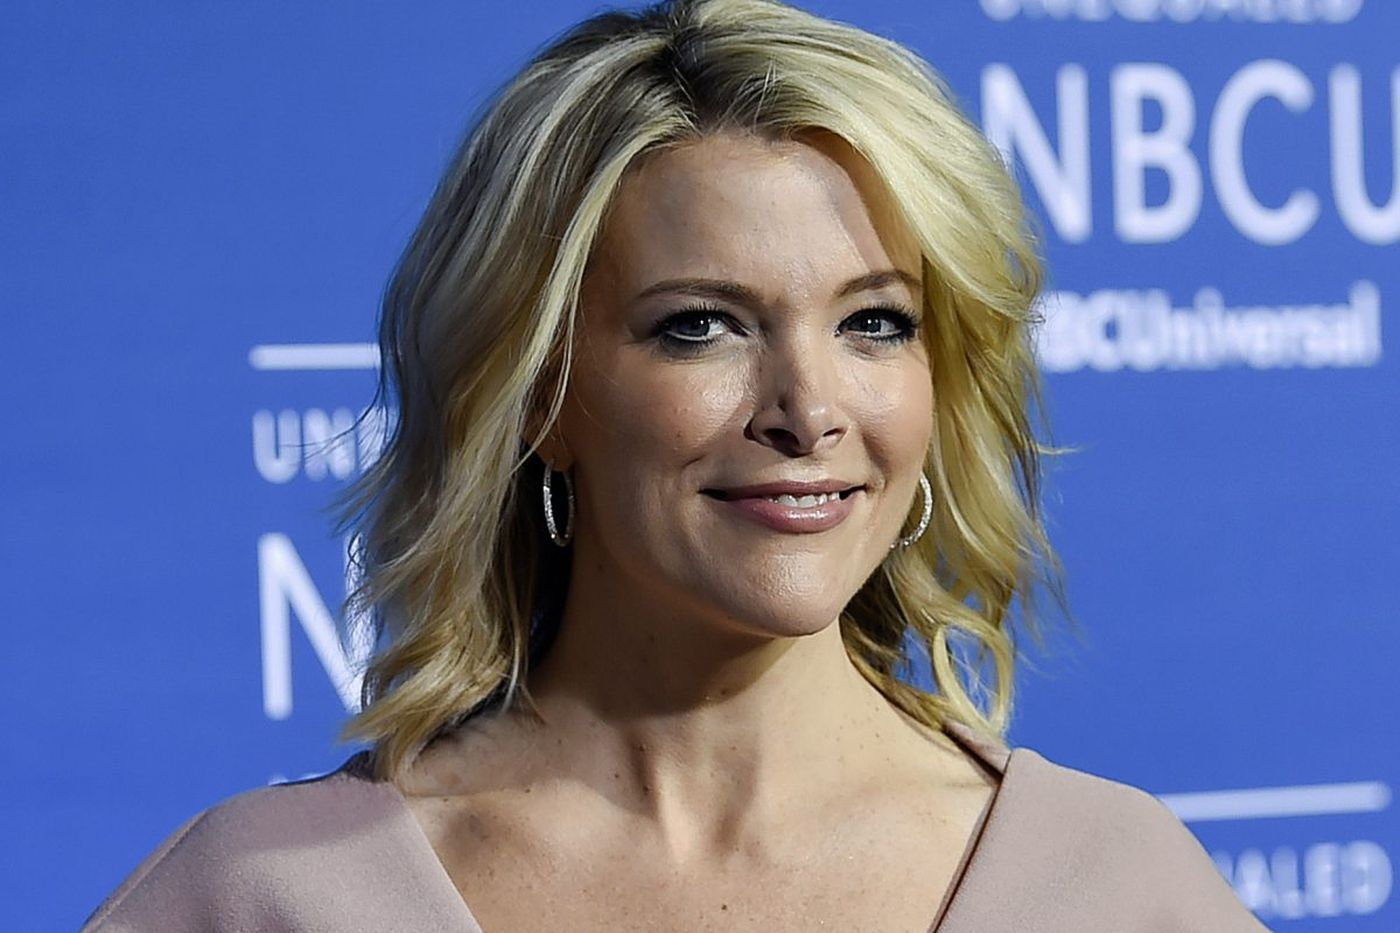 Will Megyn Kelly go easy on conspiracy theorist Alex Jones?